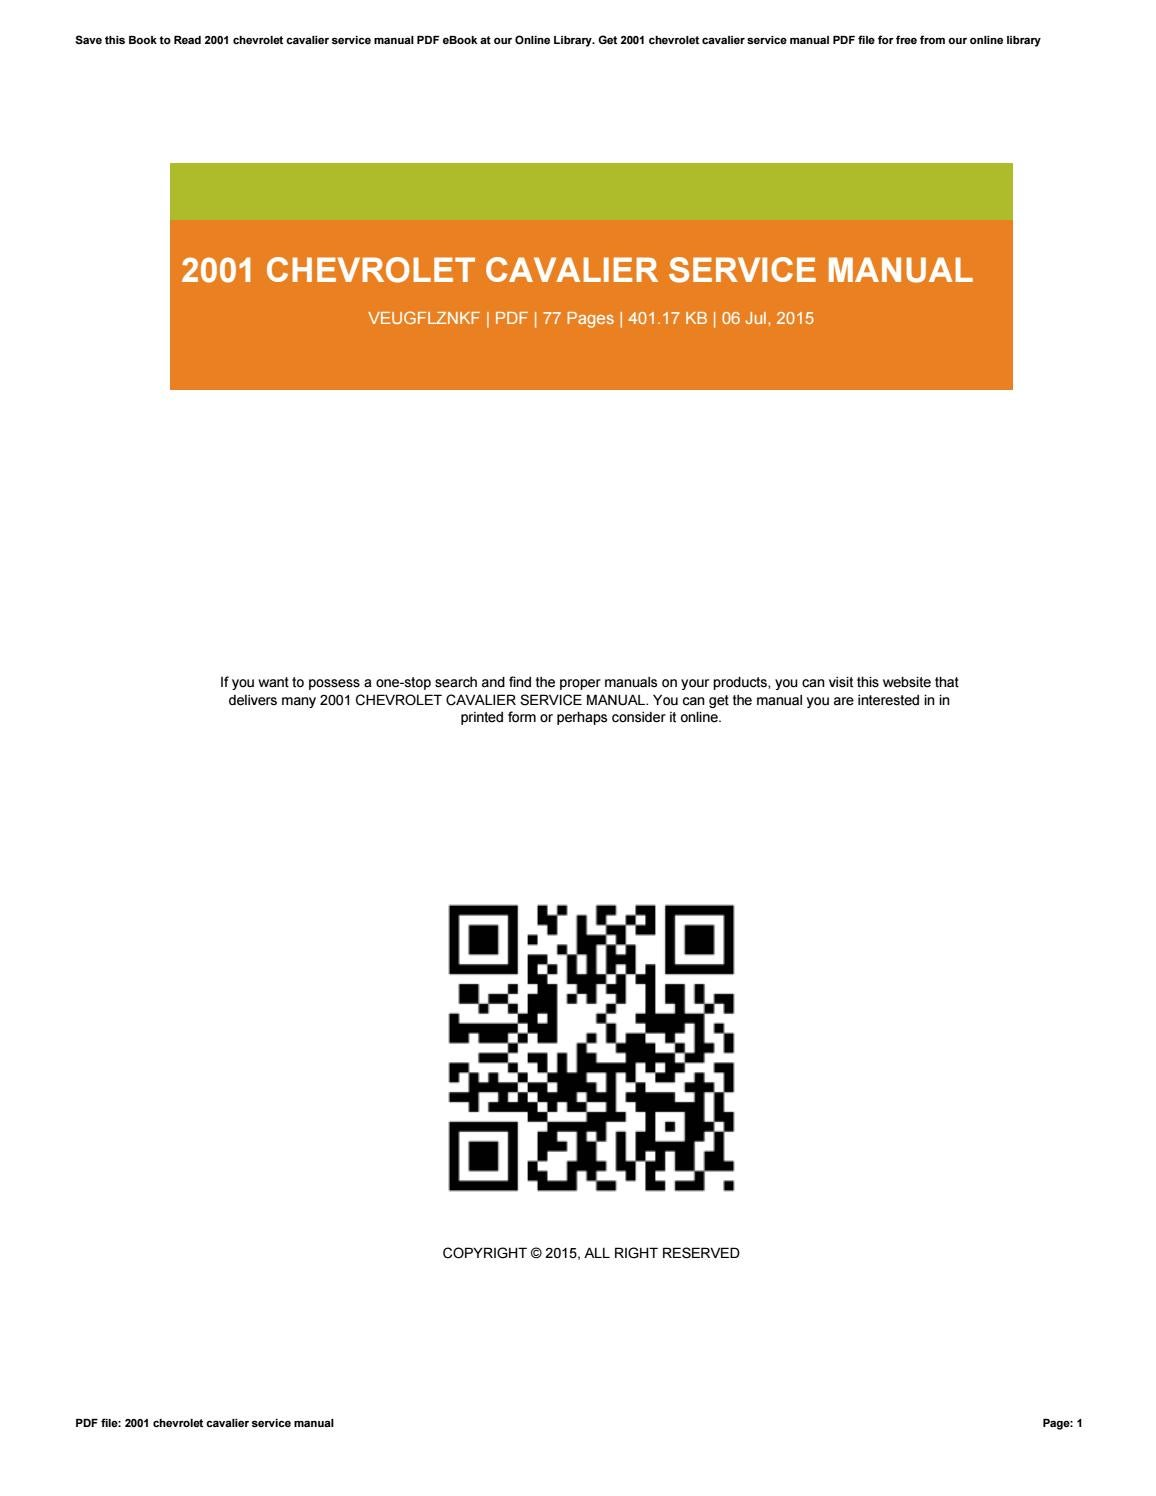 Chevrolet cavalier maintenance schedule user manuals 2005 chevrolet cavalier owner u0027s manual array 2001 chevrolet cavalier service manual by wayneearle3196 issuu rh issuu fandeluxe Choice Image